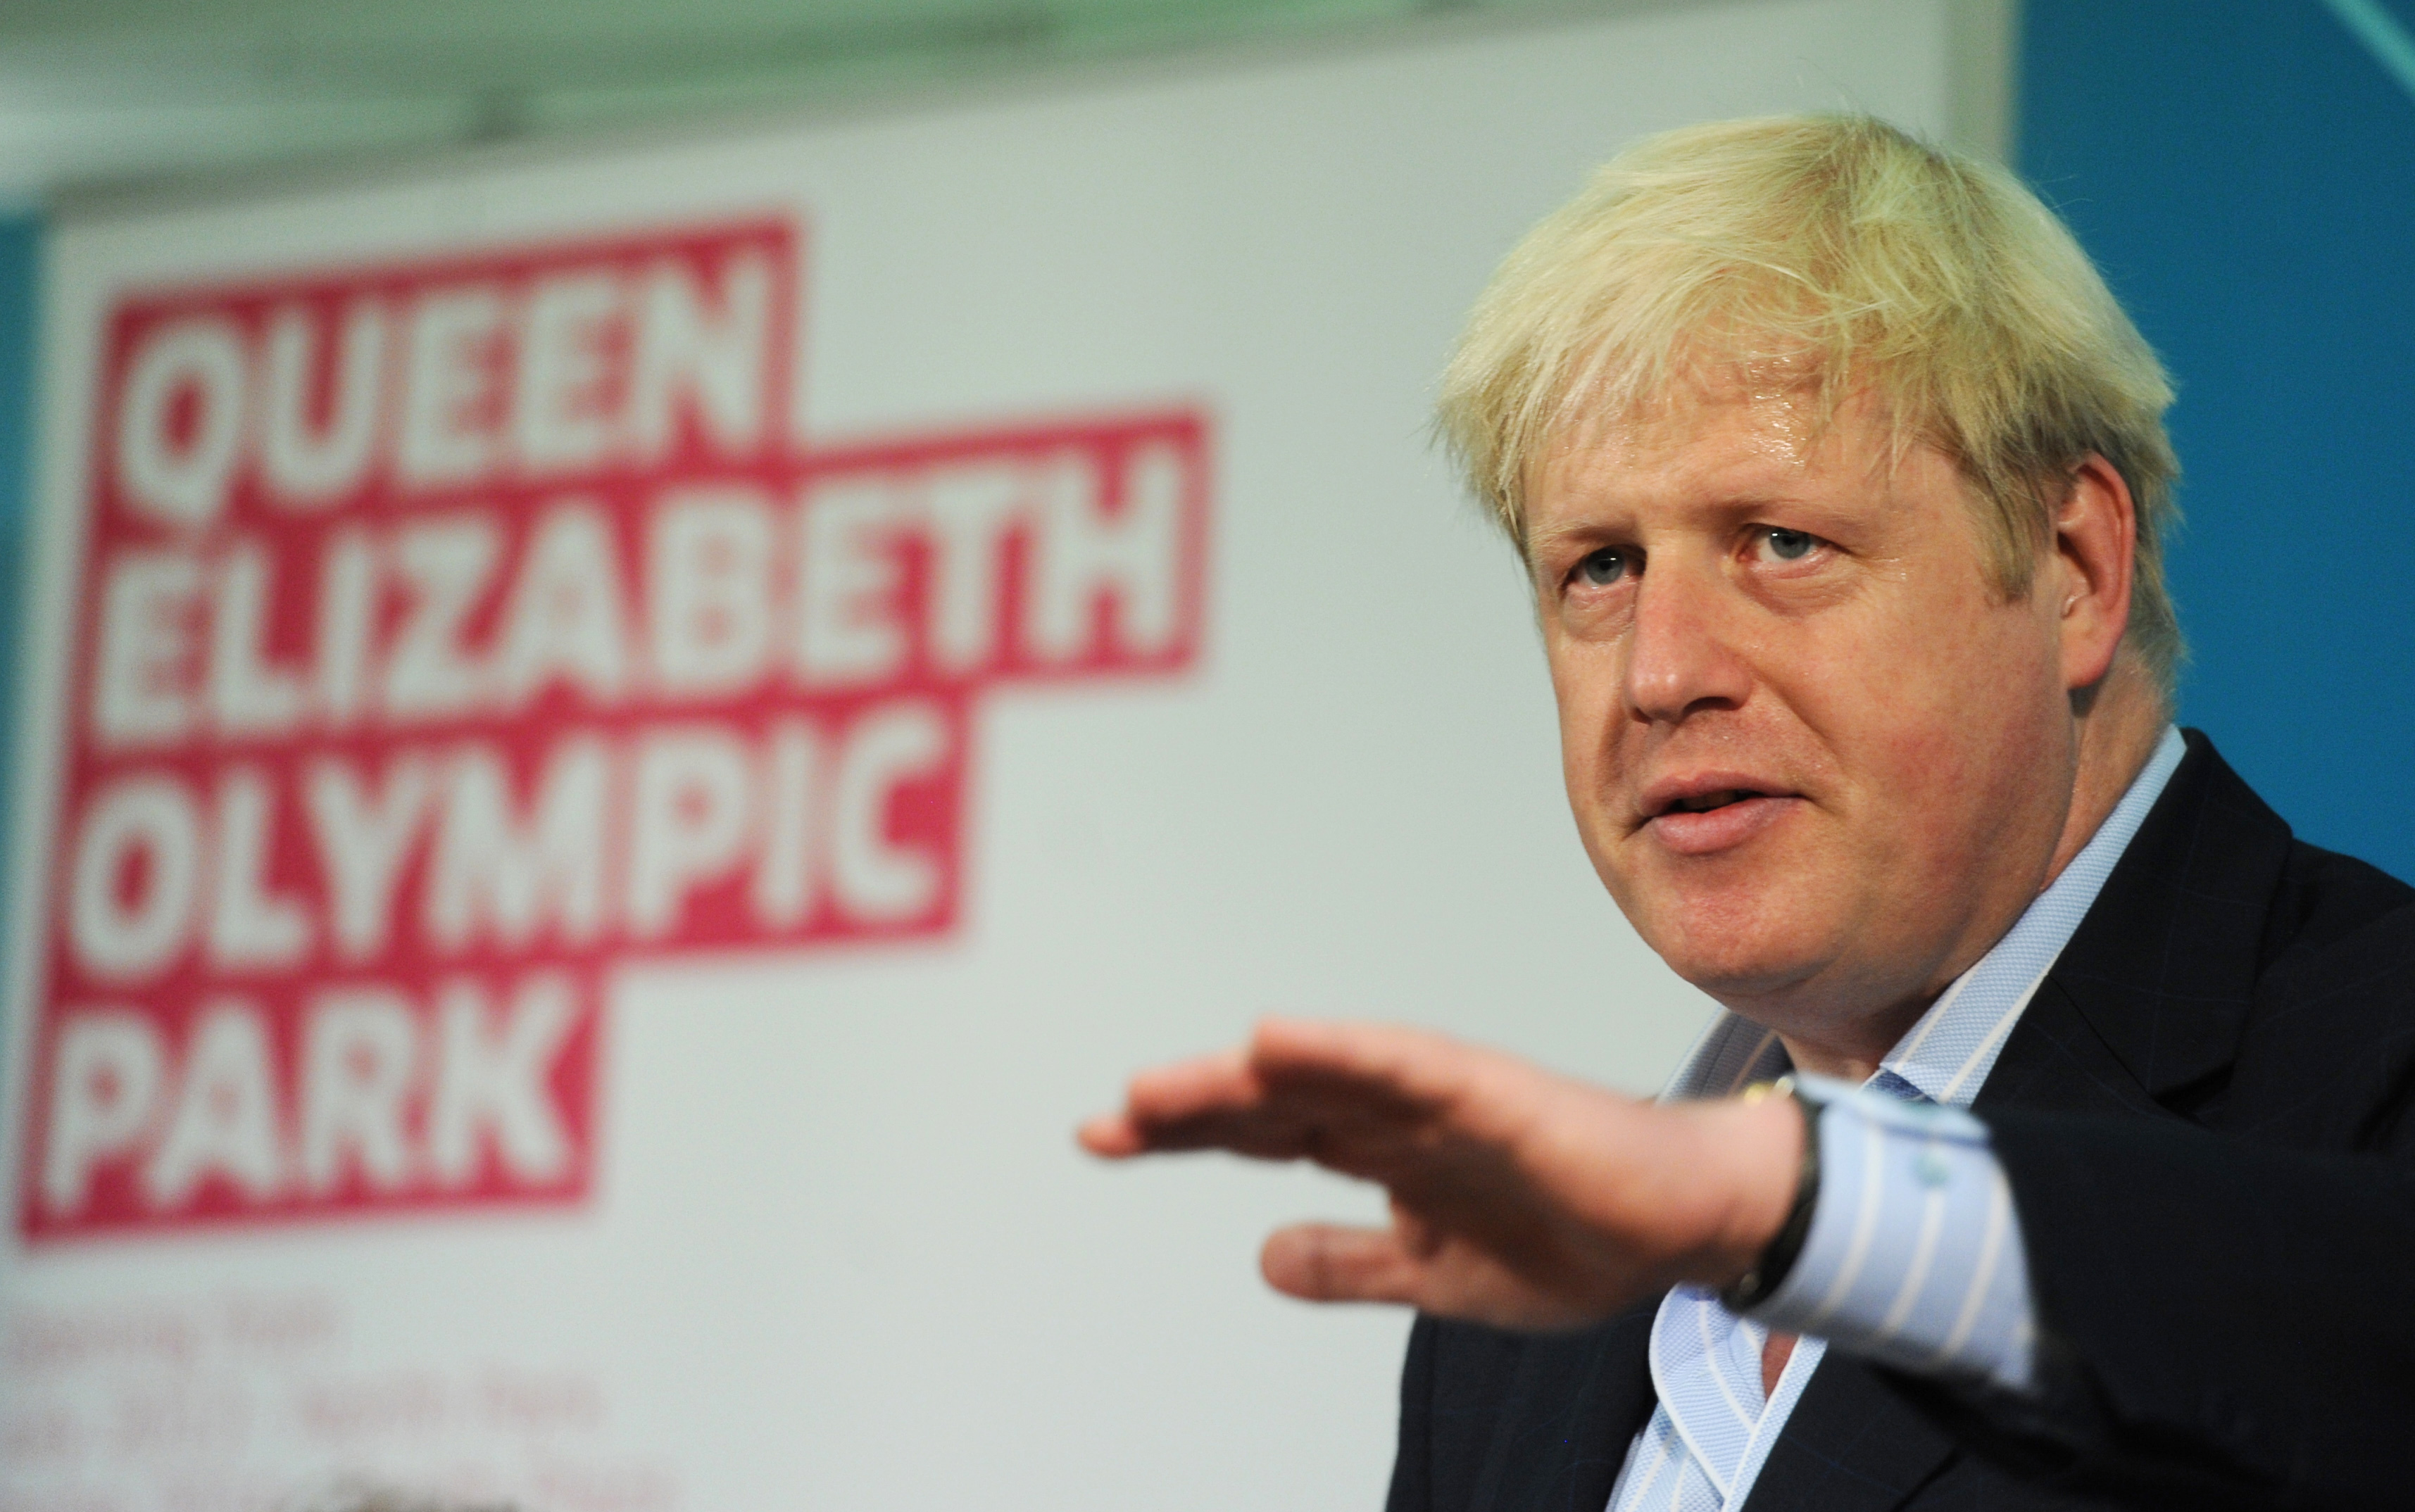 Mayor of London Boris Johnson holds a press conference in Westminster, London, to discuss the legacy of the London 2012 Olympics.